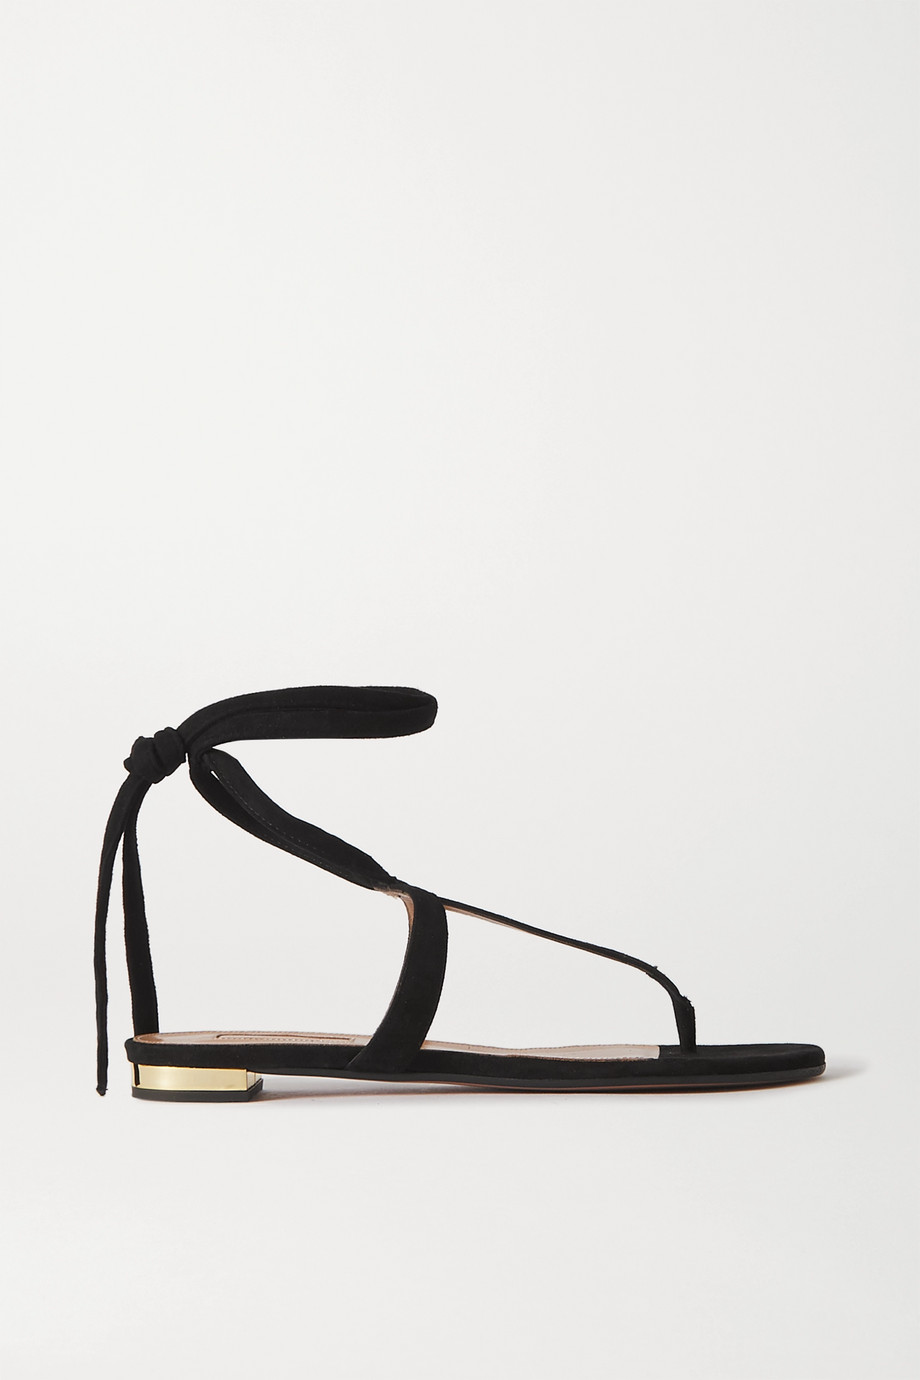 Aquazzura June Sandalen aus Veloursleder